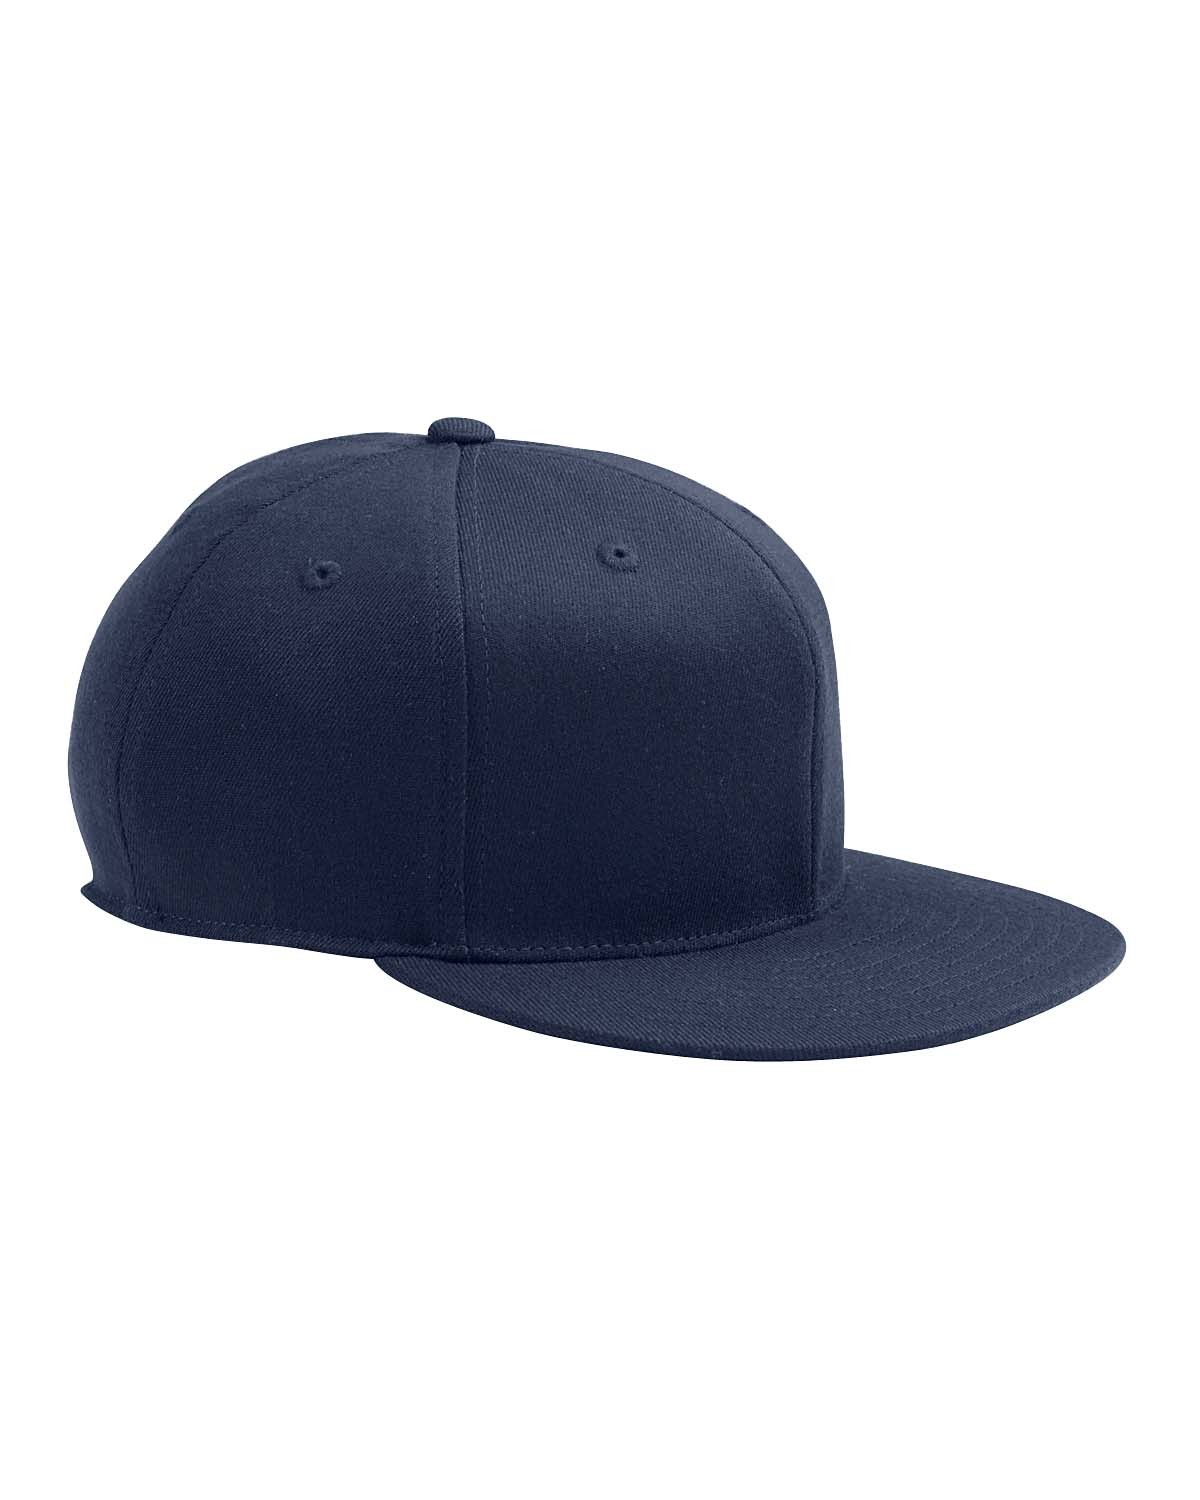 6210 Flexfit DARK NAVY